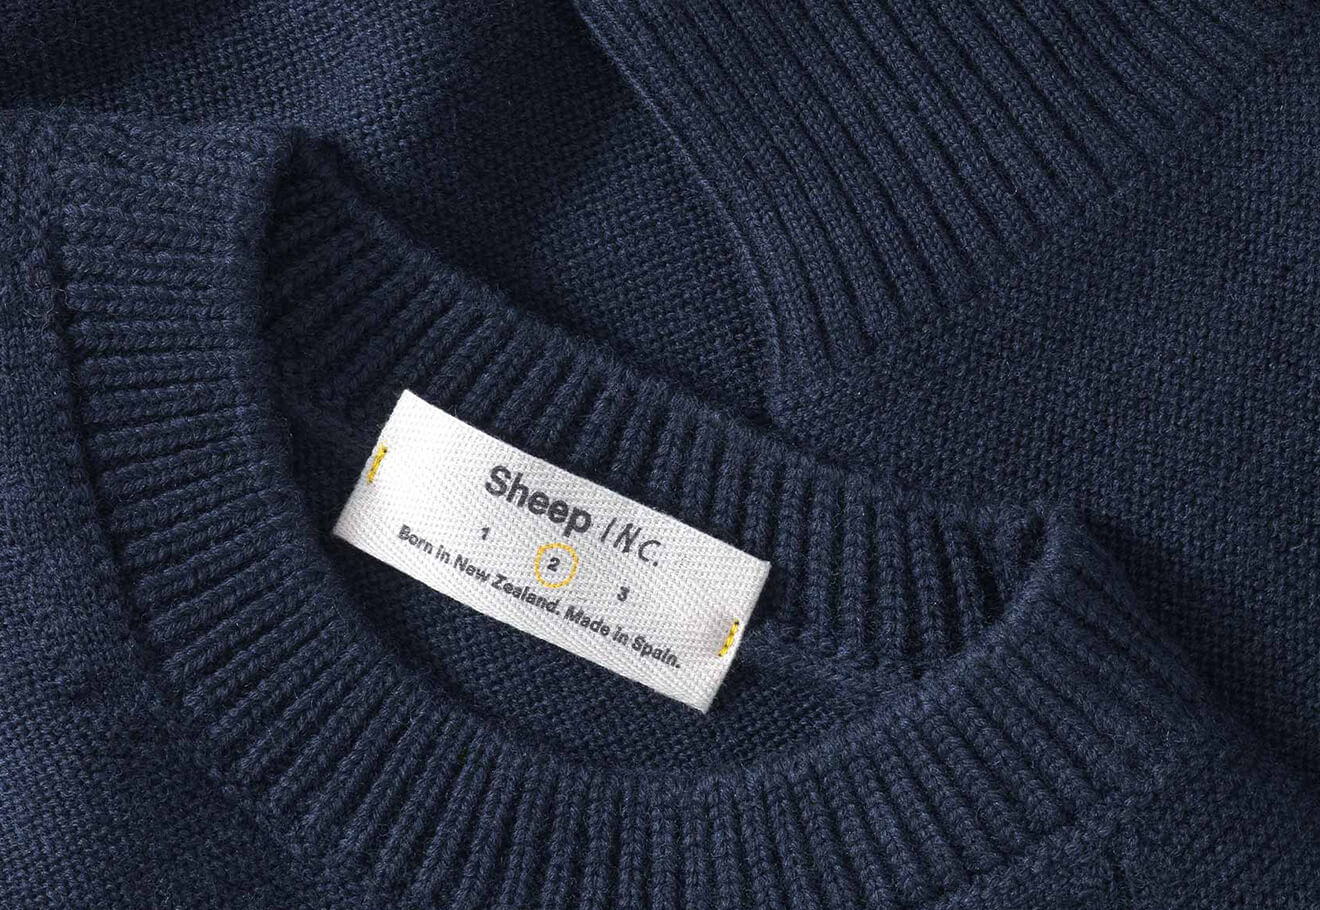 Carbon negative sweater made from wool